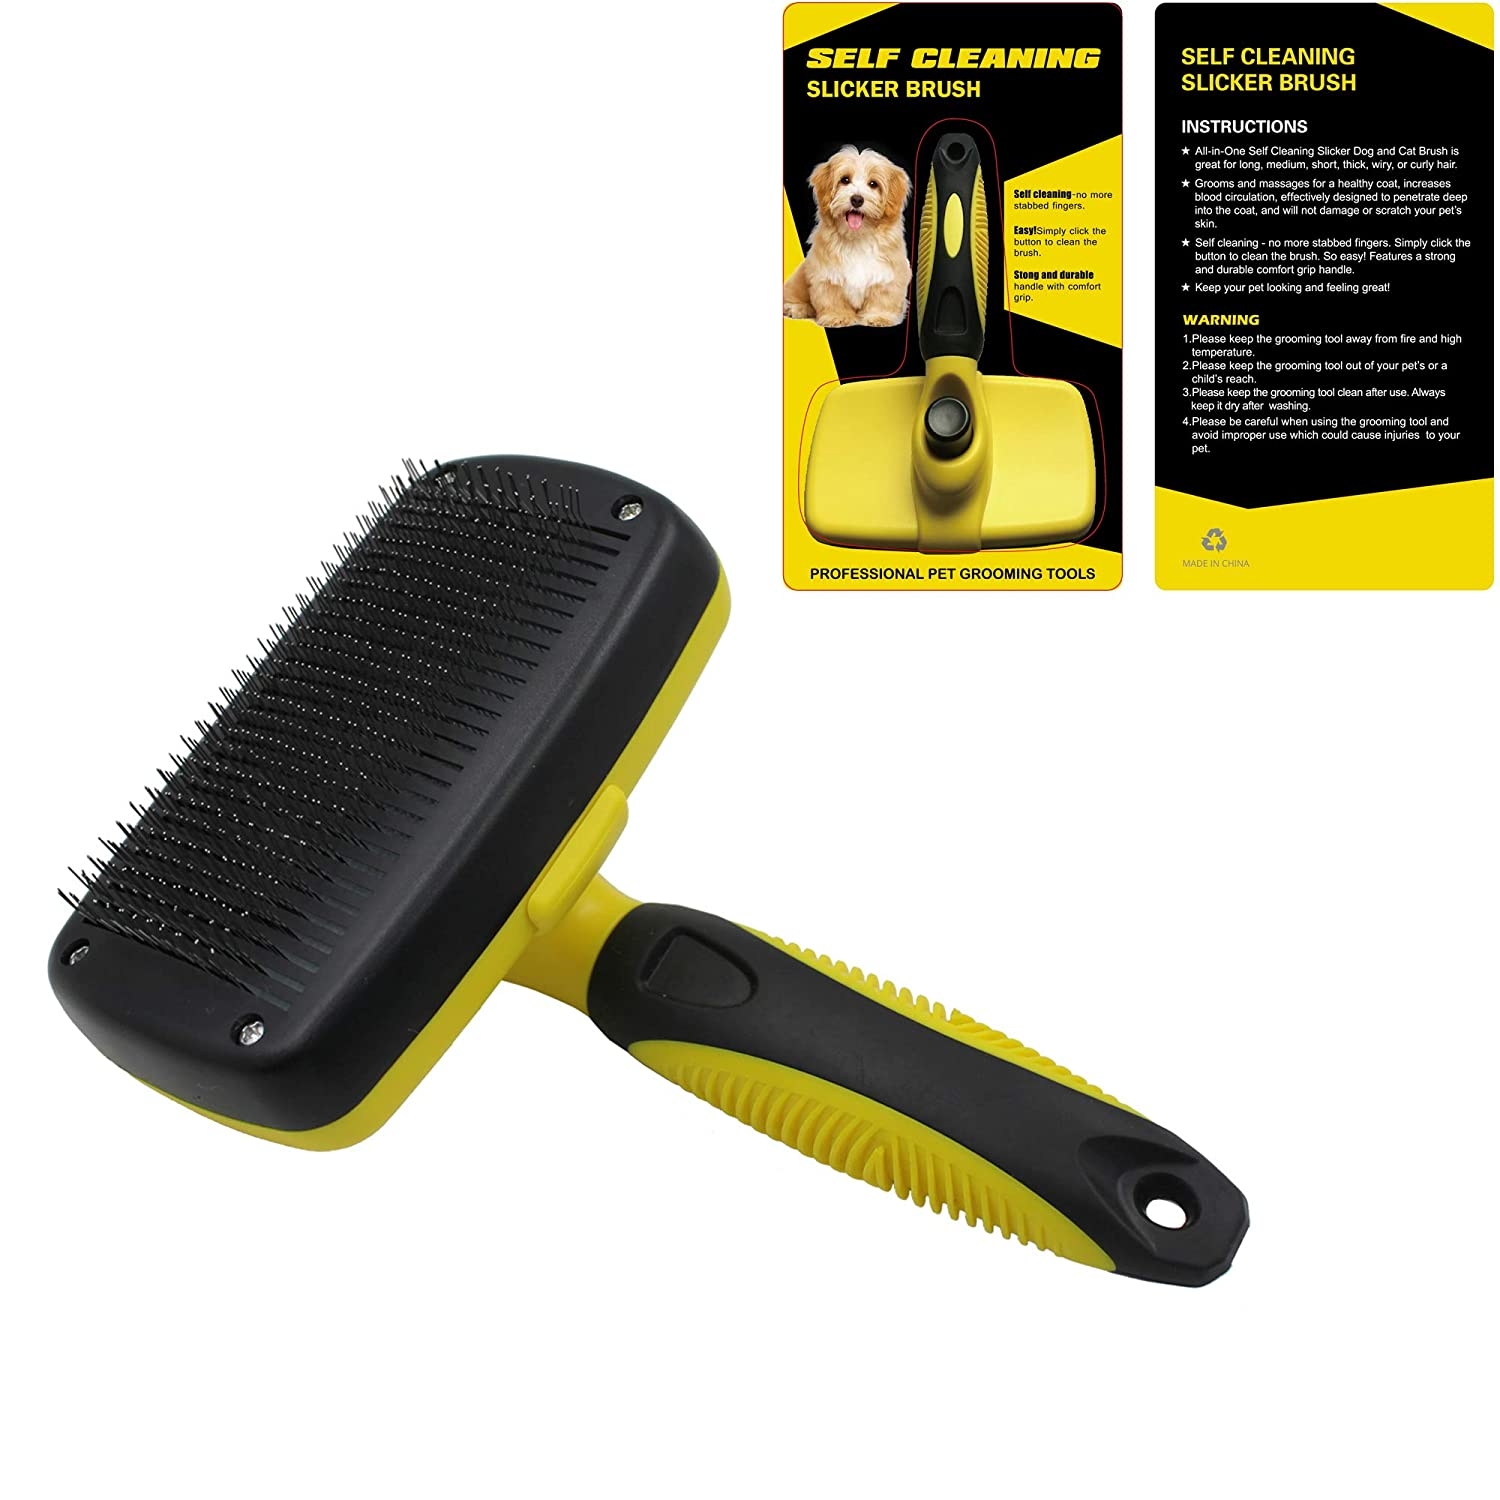 Cat Slicker Brush Quick Self-Cleaning Pro Quality Grooming Comb Eliminates Mats and Tangles Shedding & Hairballs